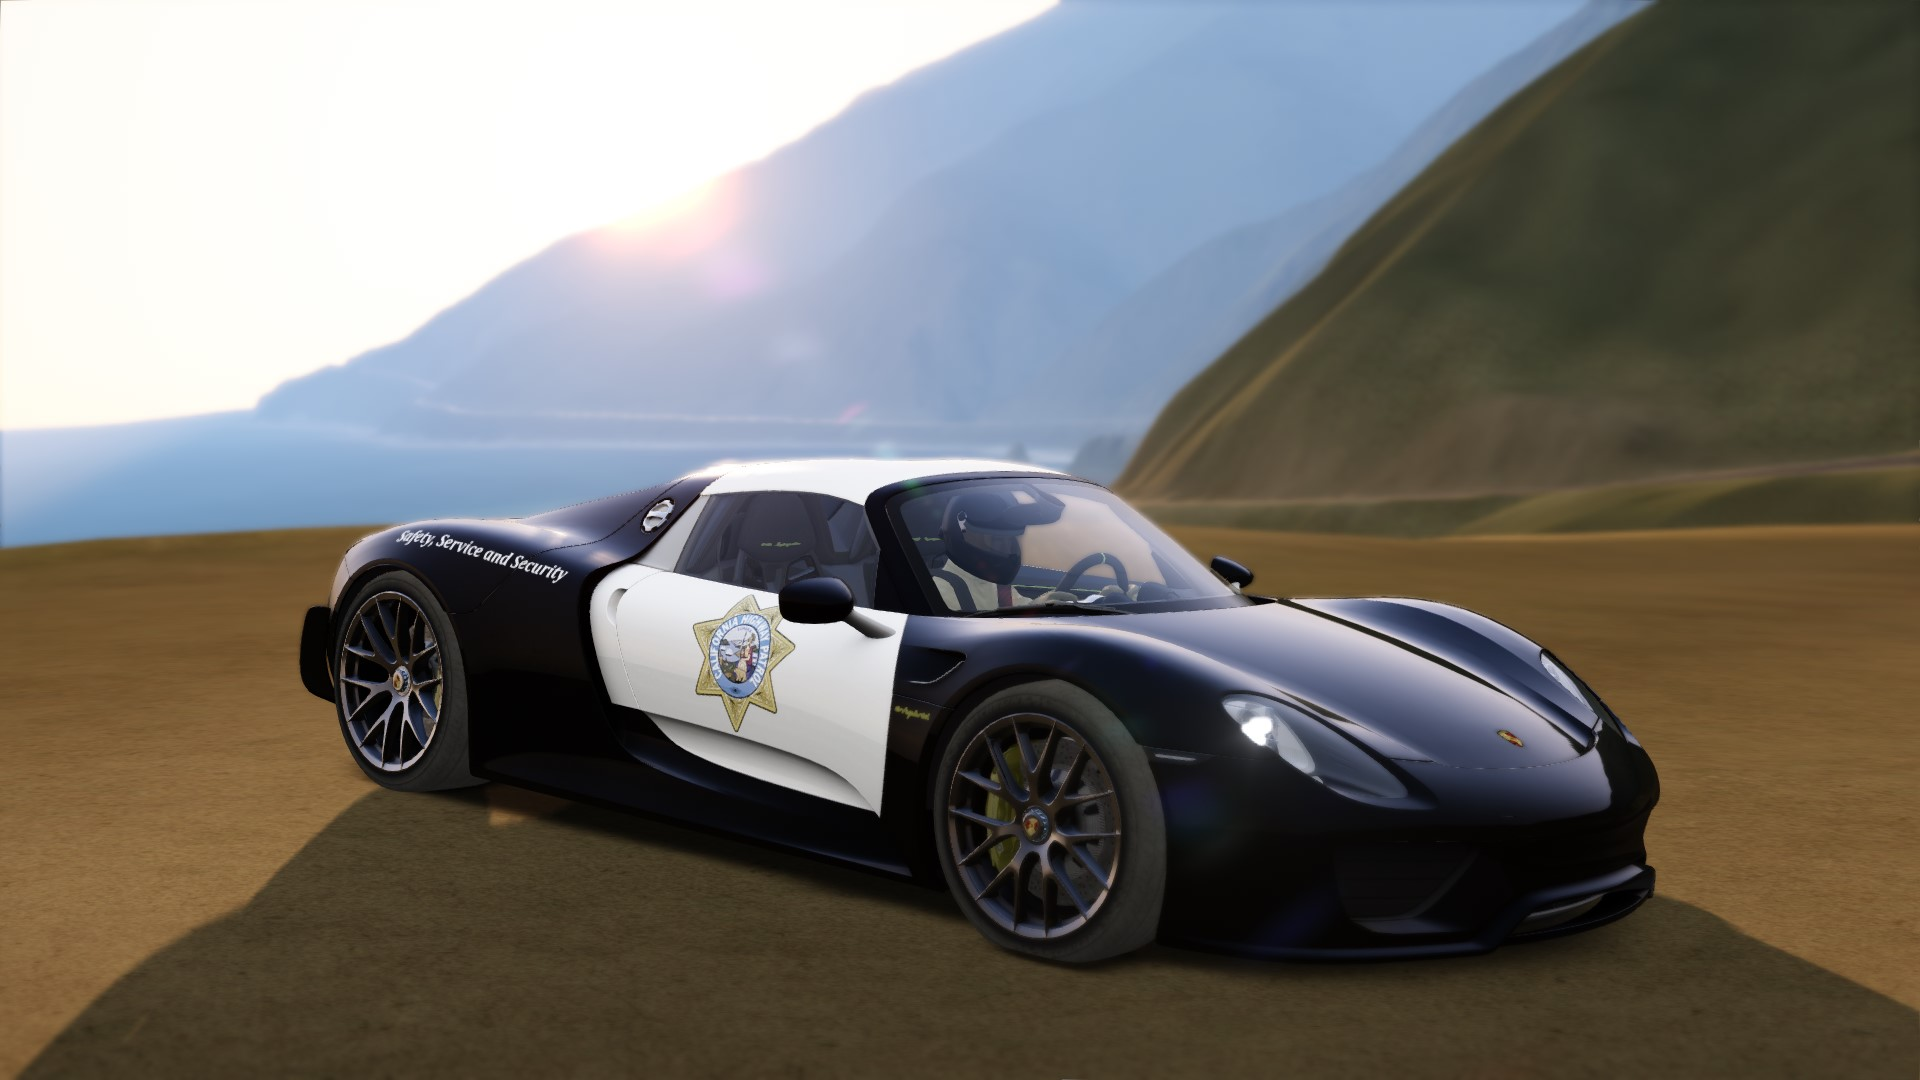 Screenshot_ks_porsche_918_spyder_pacific_coast-4.jpg